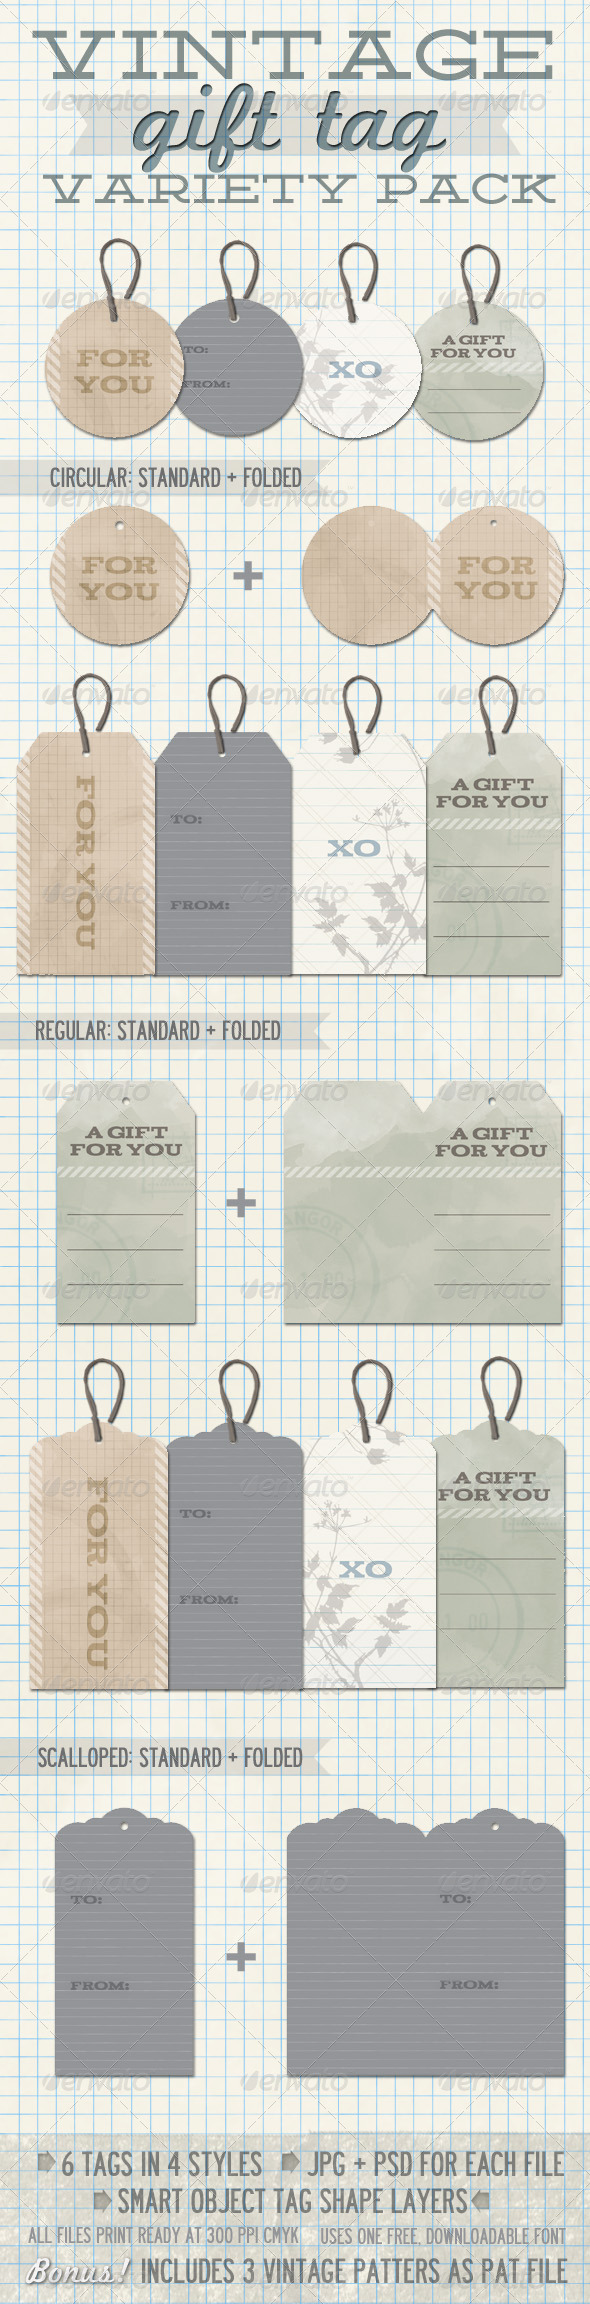 GraphicRiver Vintage Gift Tag Variety Pack 265425